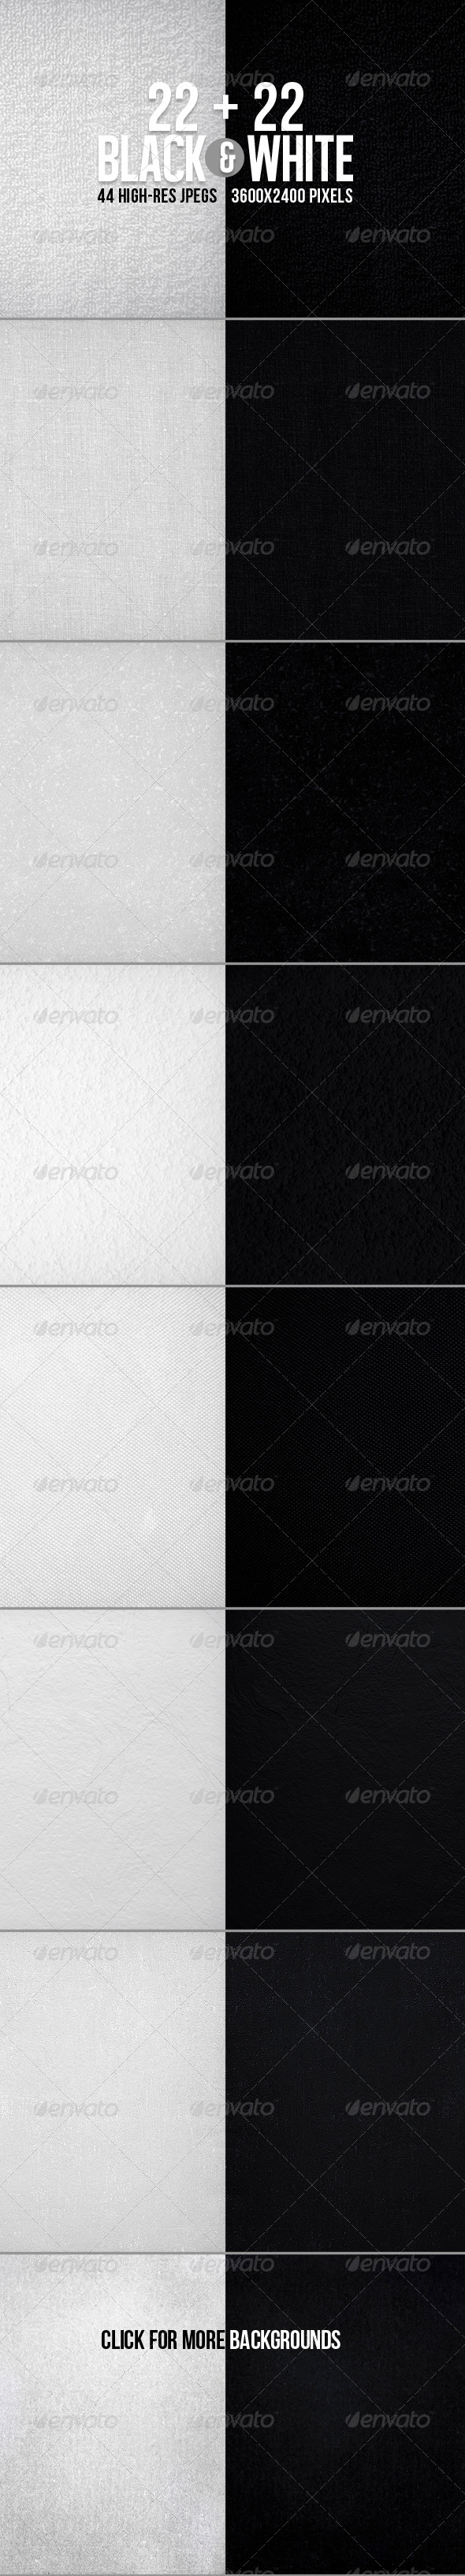 44 Black&White Textured BGs - Miscellaneous Backgrounds